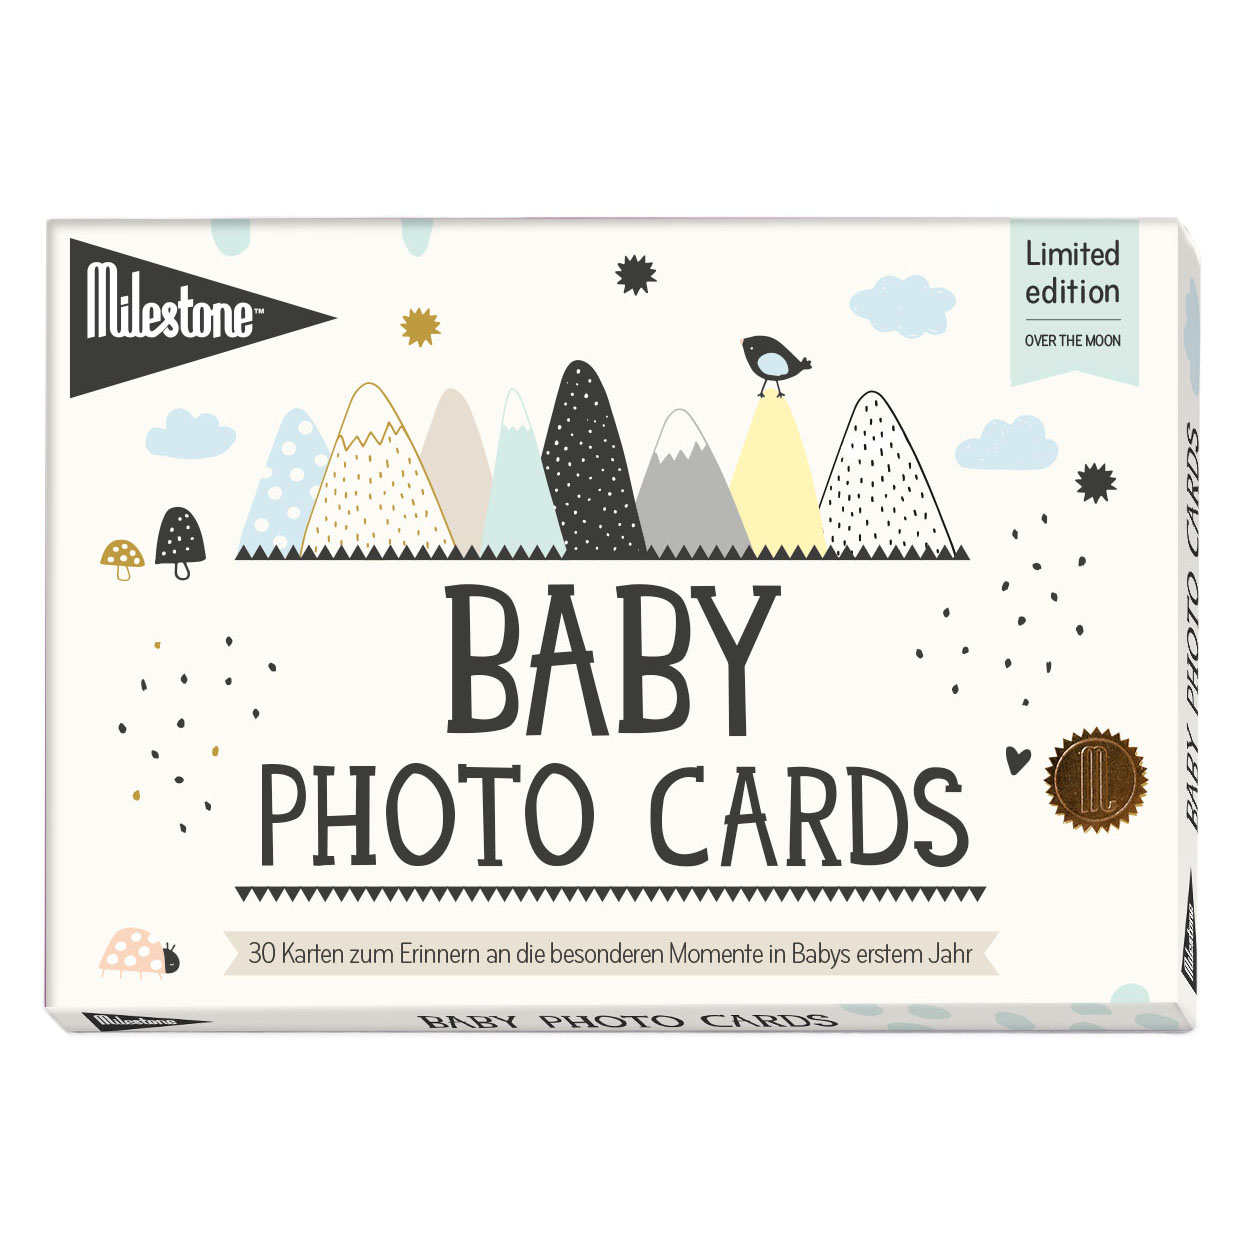 Baby Photo Cards - Over the moon - deutsche Version - Milestone